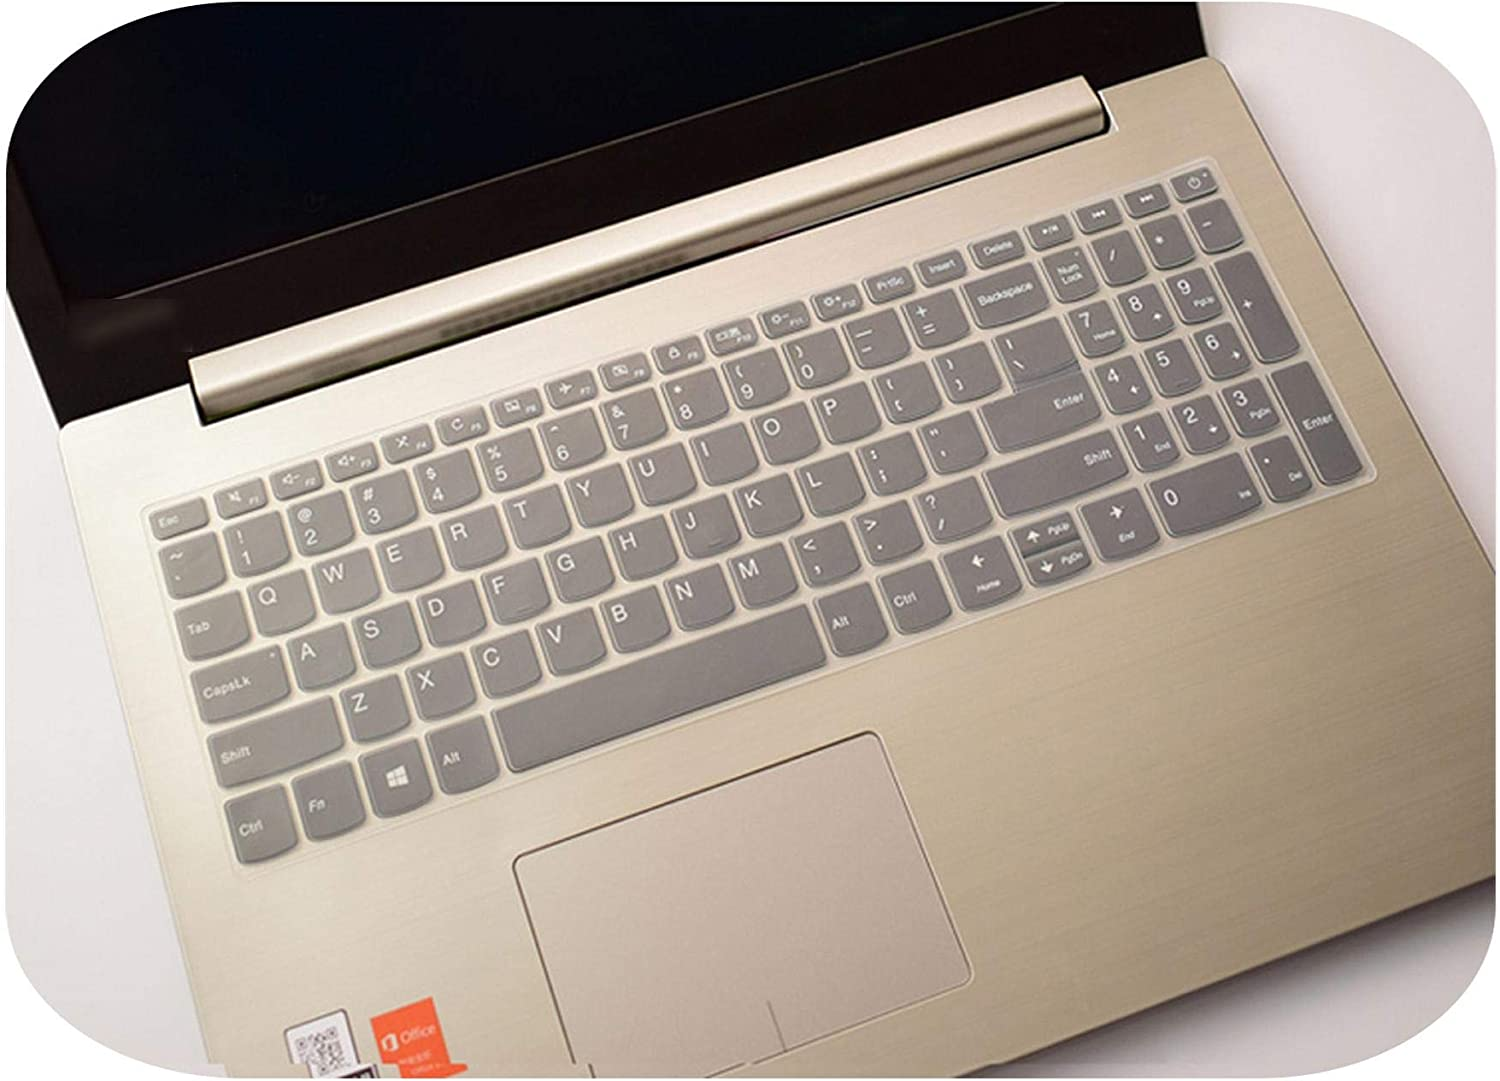 Laptop Clear Silicone Keyboard Cover Protector for Lenovo Ideapad 720 15//720S 15//320 15//320S 15//520 15//V330 15//V130 15//330S 15-Transparent